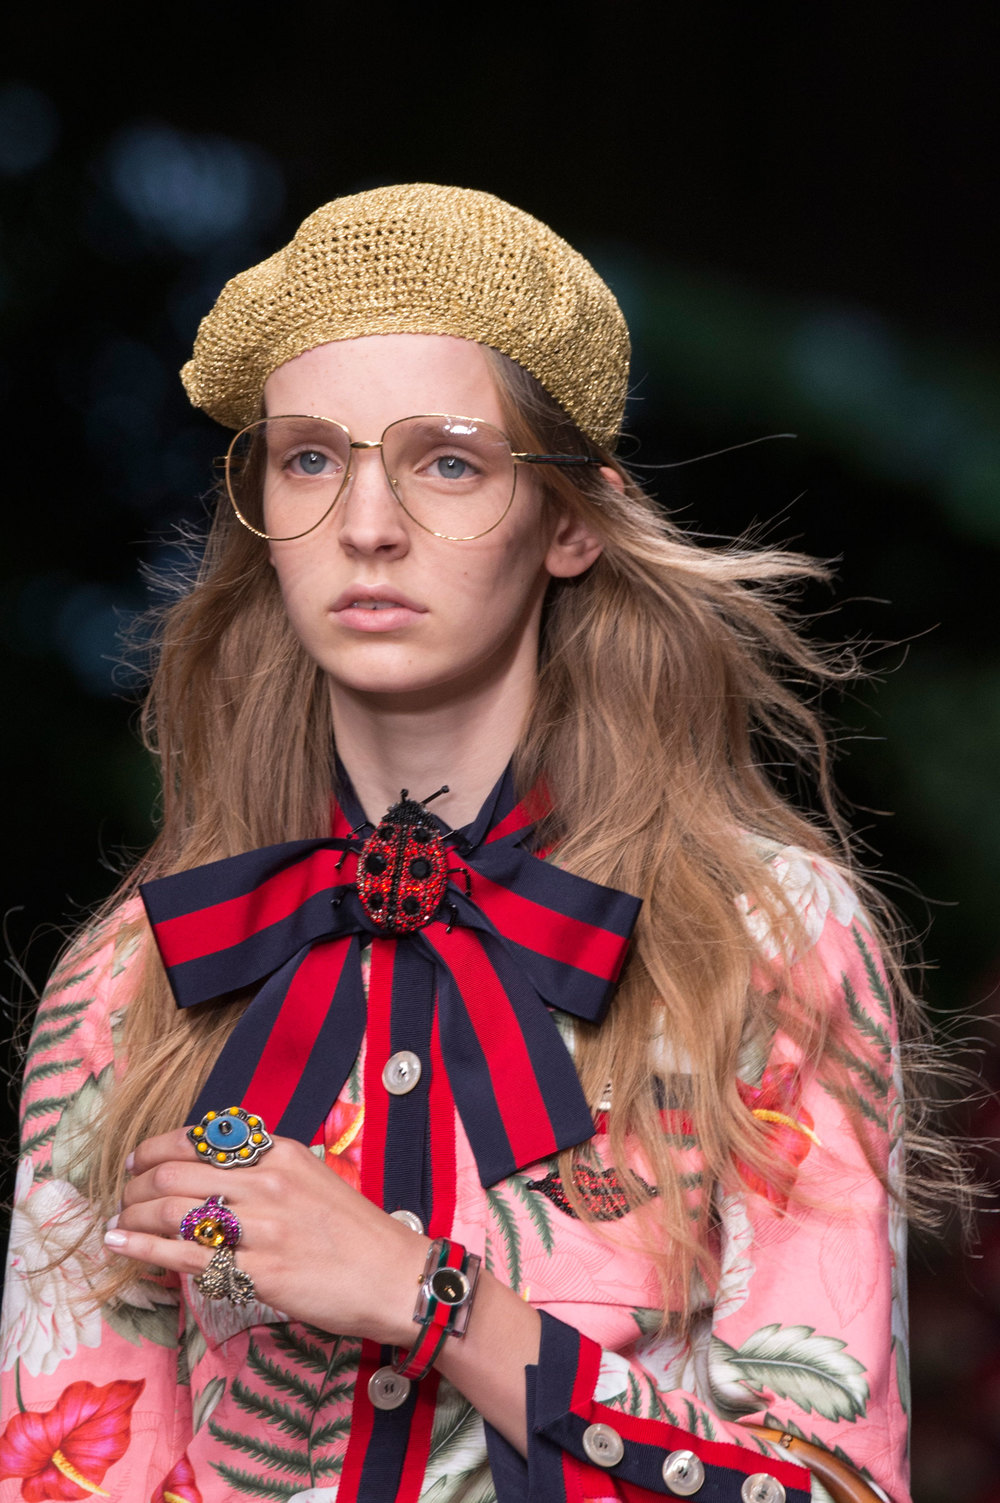 gucci-beauty-spring-2016-fashion-show-the-impression-023.jpg